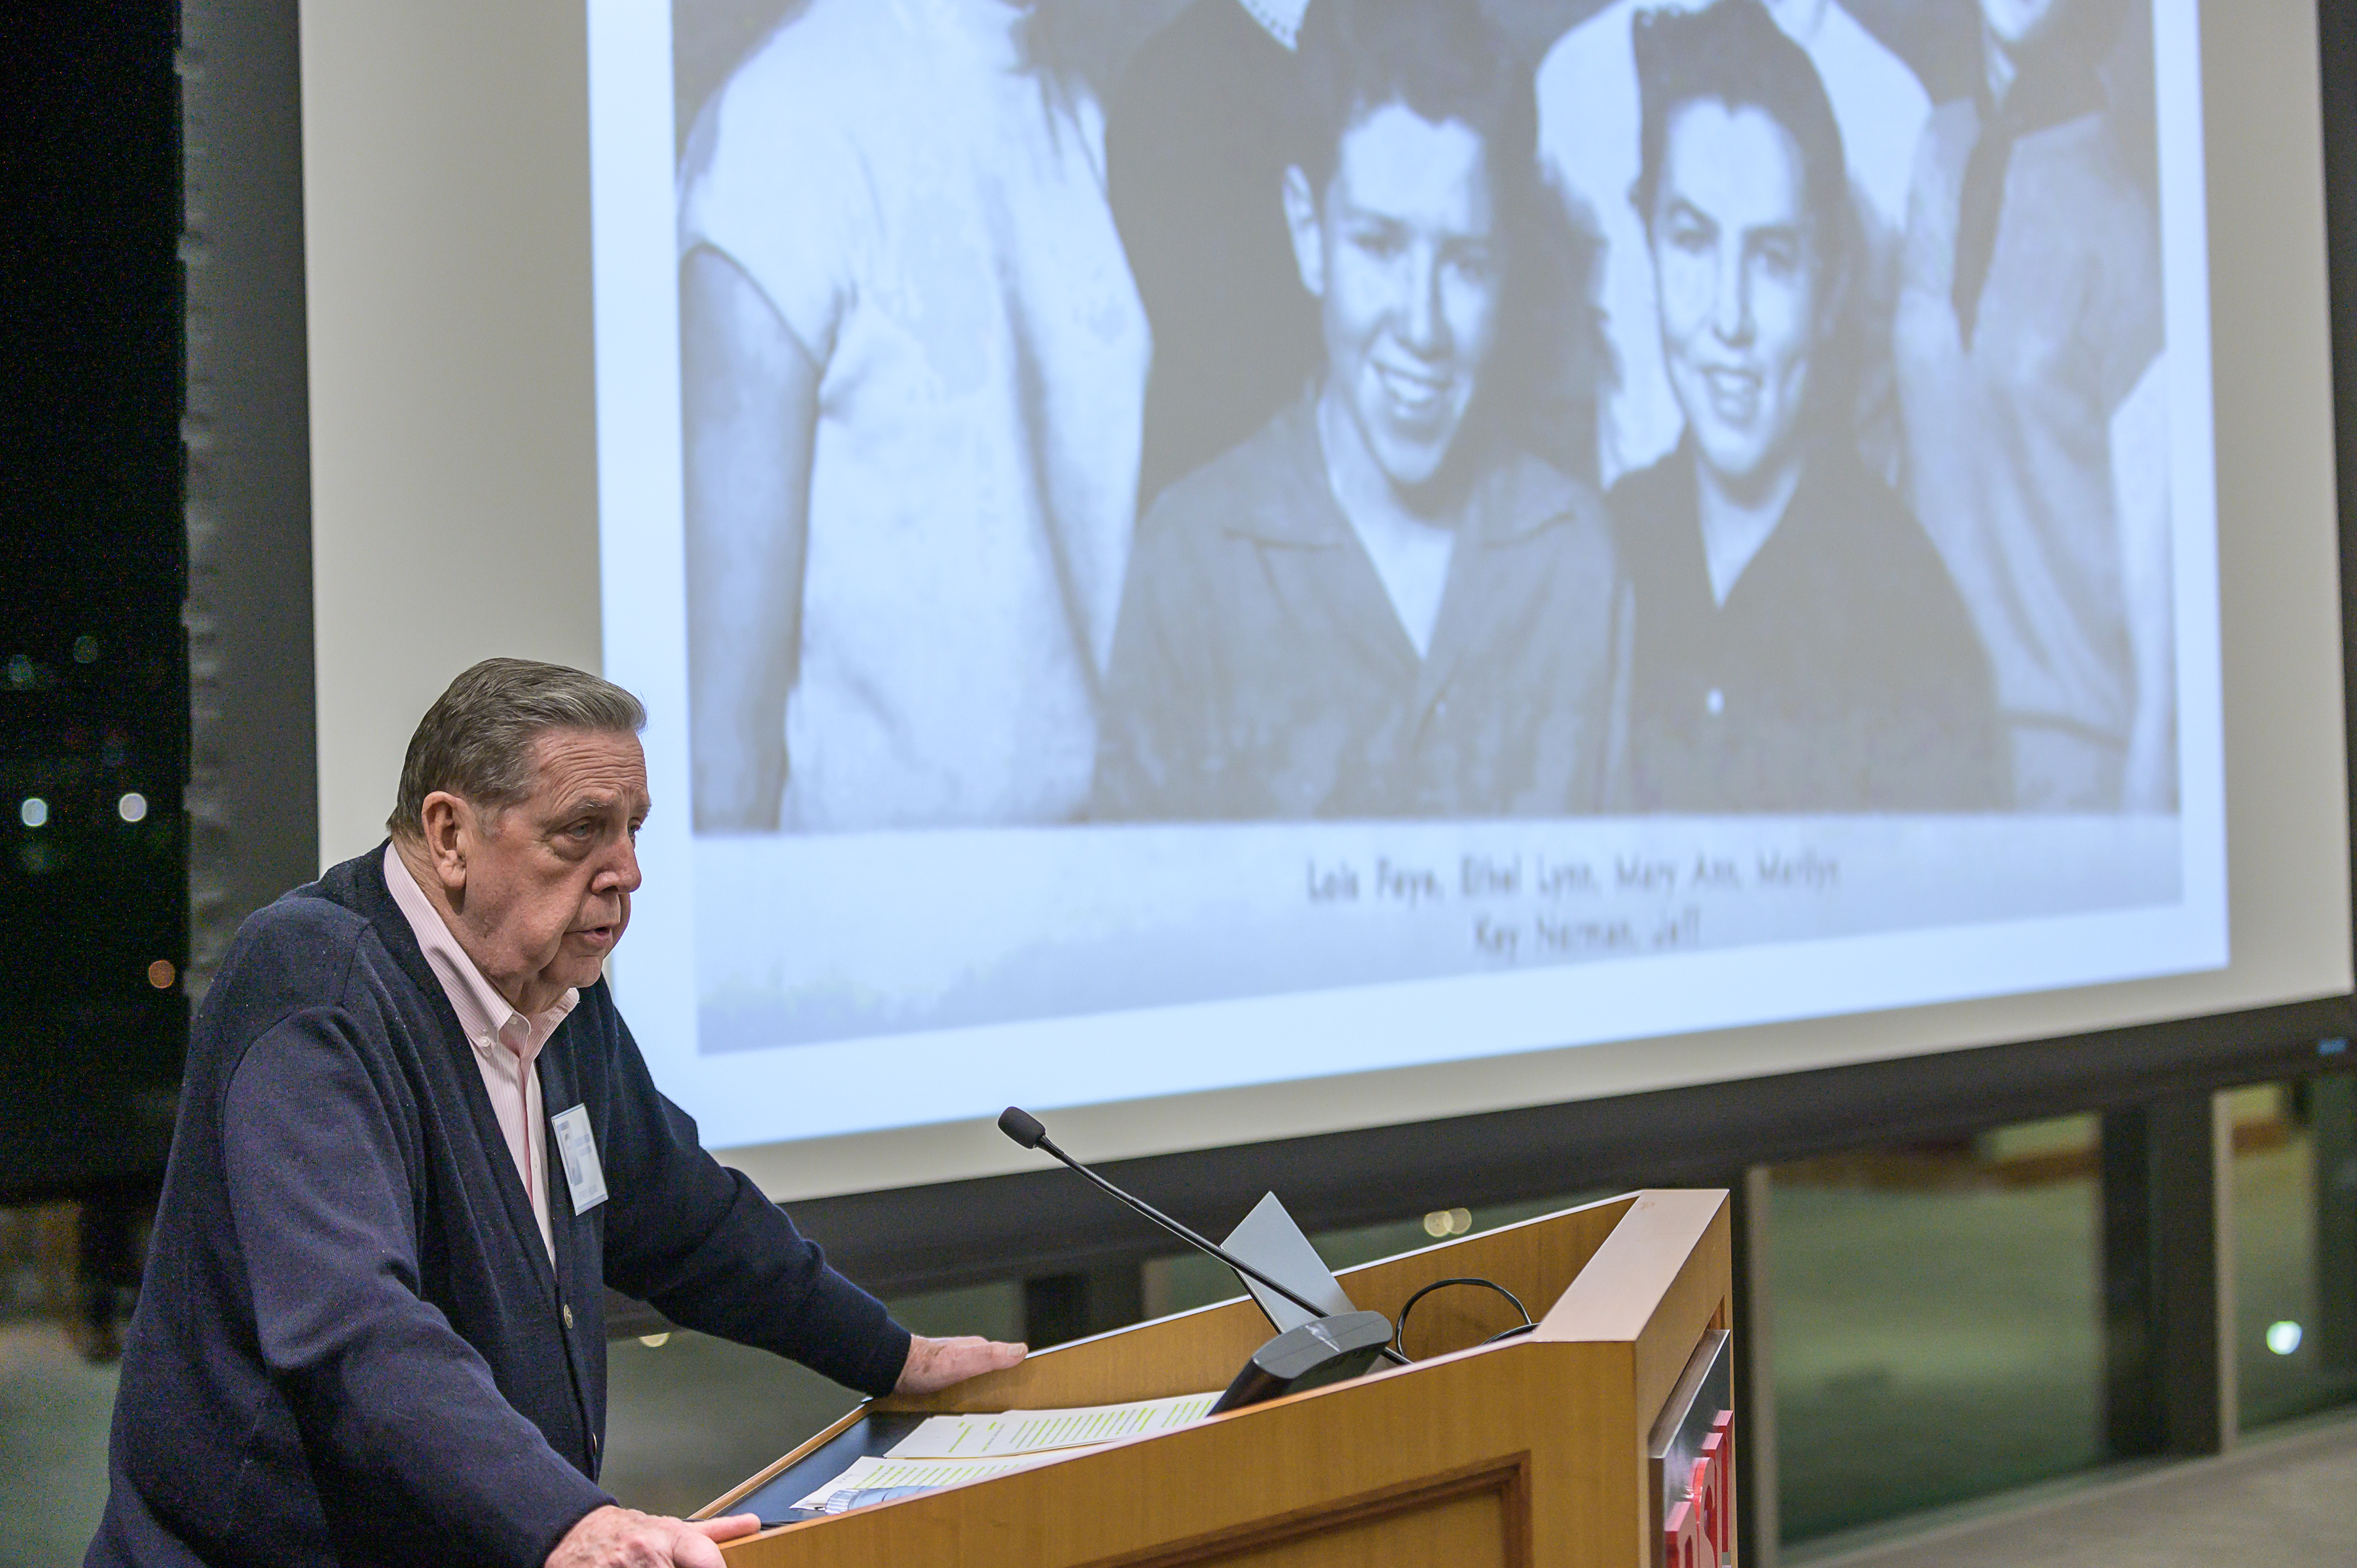 Elder Jeffrey R. Holland, a member of the Quorum of the Twelve Apostles of The Church of Jesus Christ of Latter-day Saints, is flanked by a photograph of himself as a young man, on right in photo, while speaking to his high school classmates and other guests at the 60-year reunion for the Dixie High School class of 1959 on Thursday, Oct. 24, 2019, in St. George.